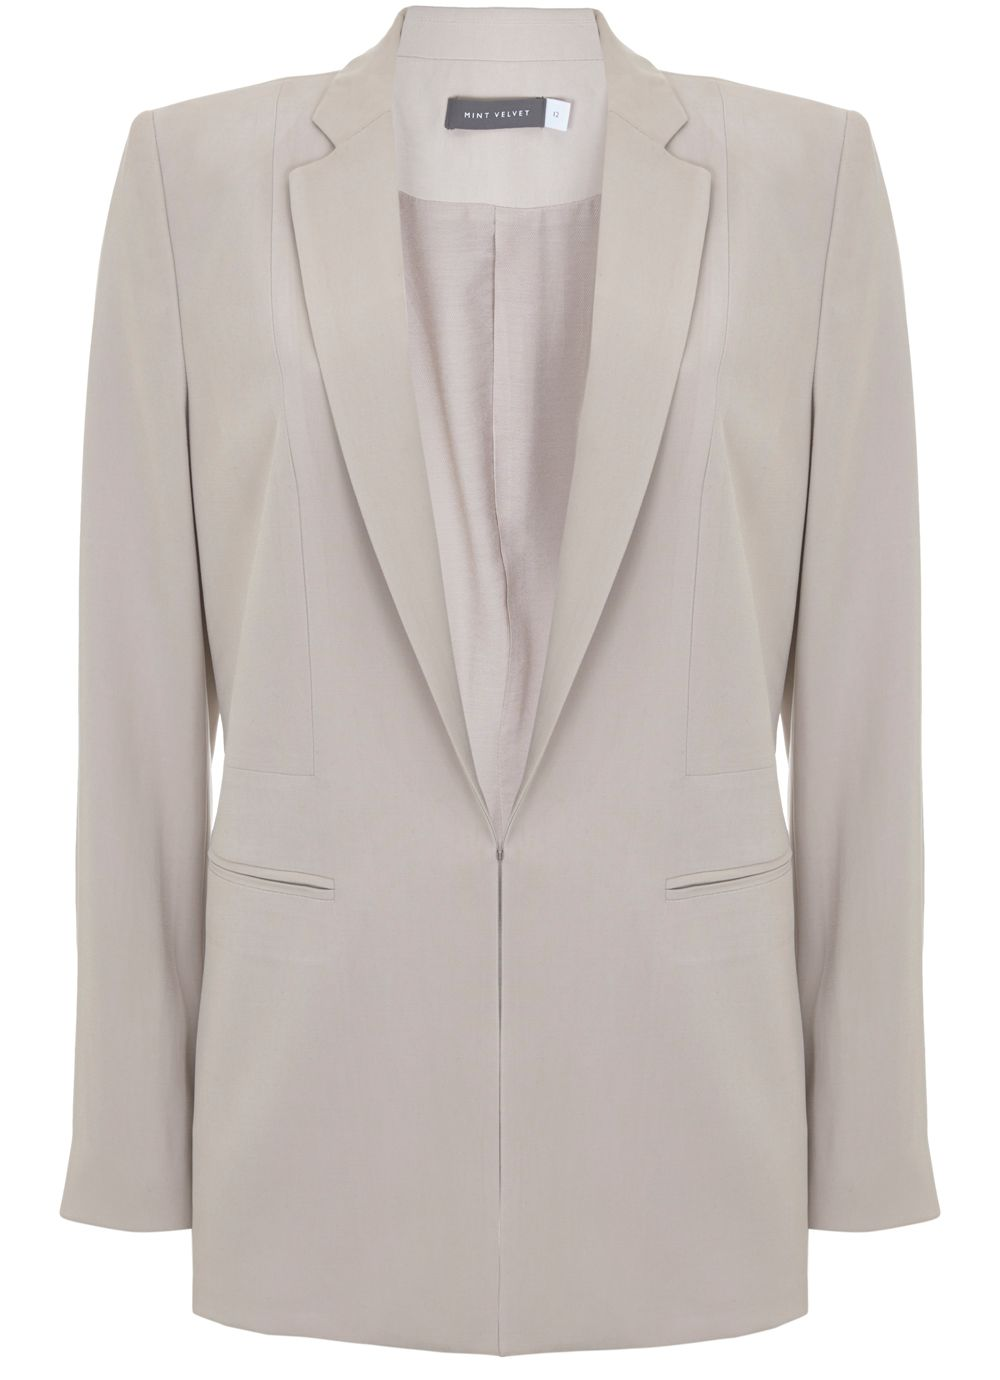 Mint Velvet Oyster Tailored Blazer, Light Brown